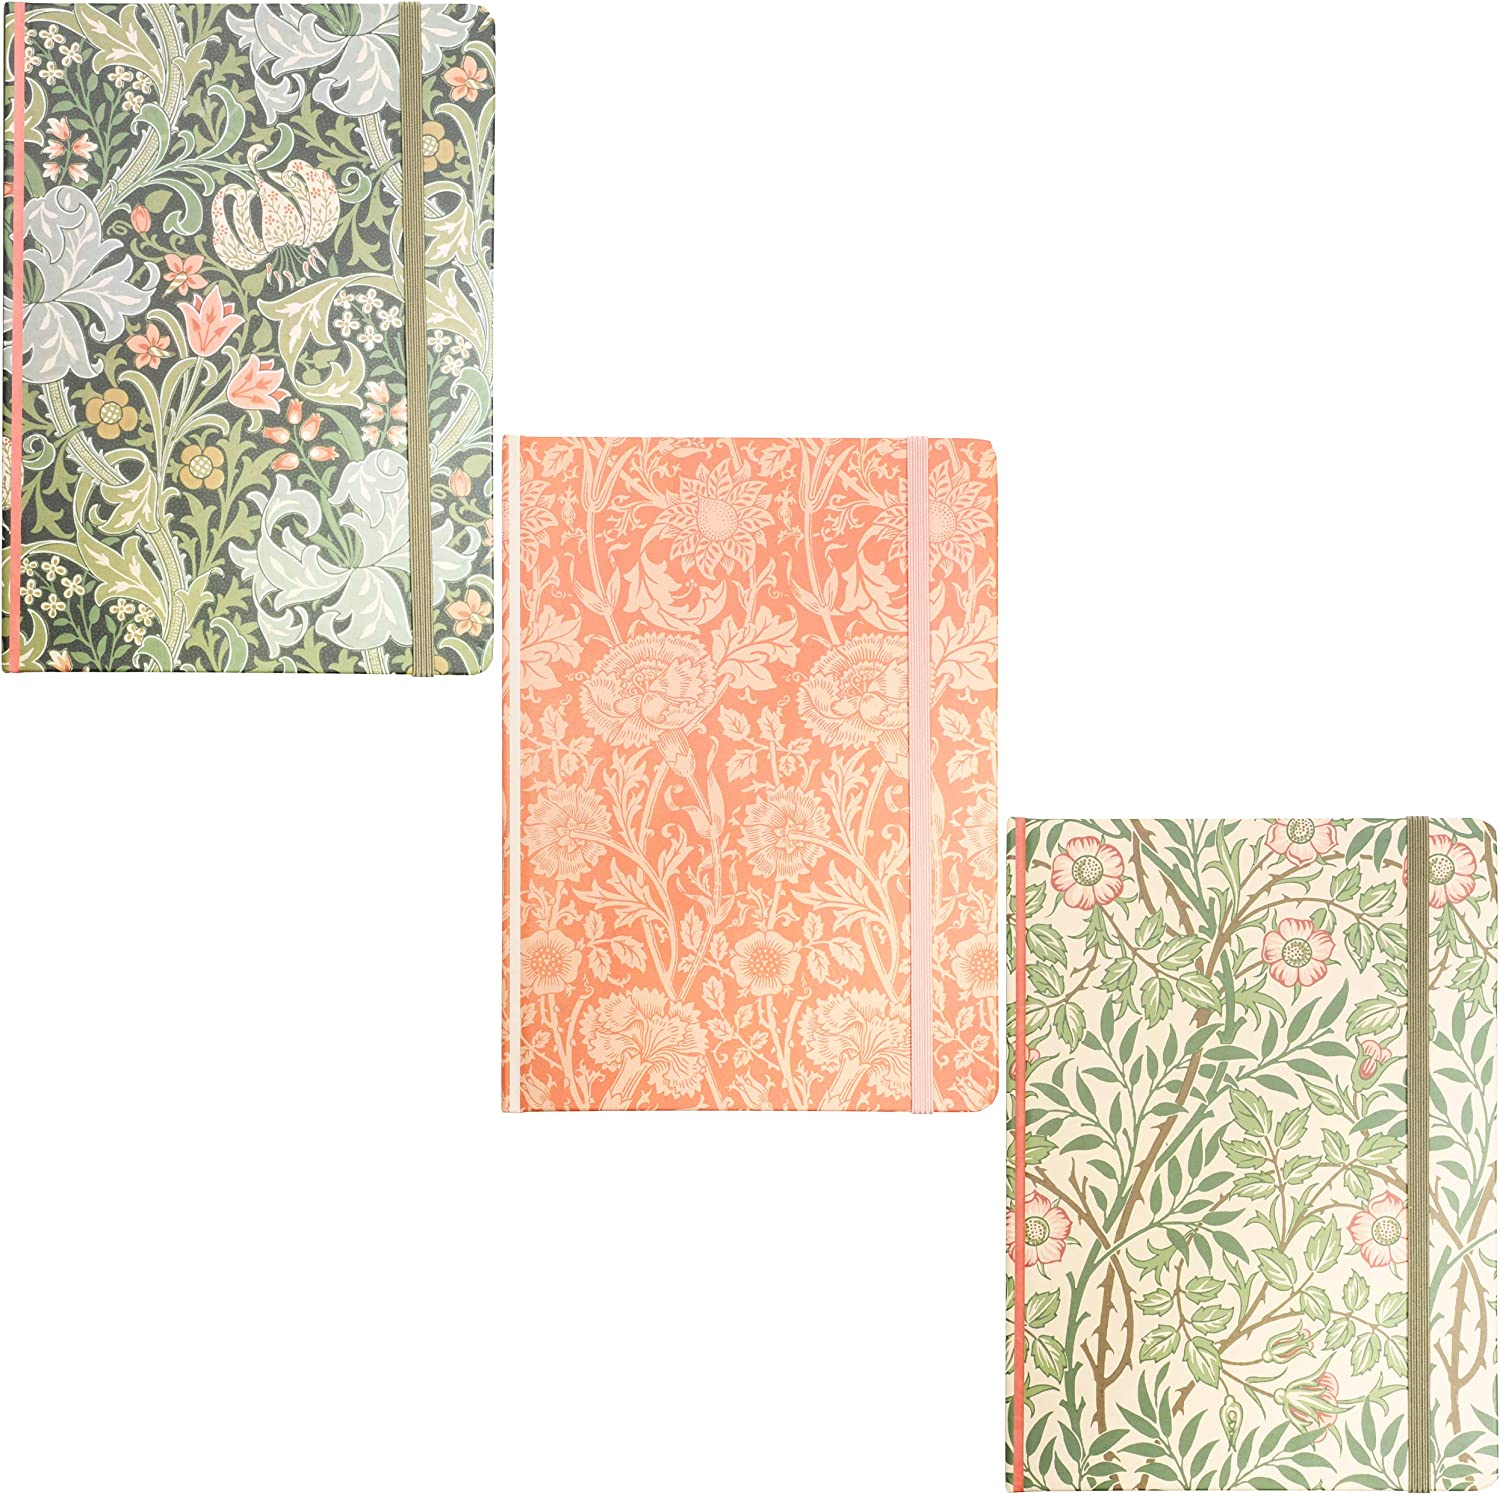 William Morris Hard Cover Diary Notebooks 7 x 5 in, 3 Pack 160 Lined Pages